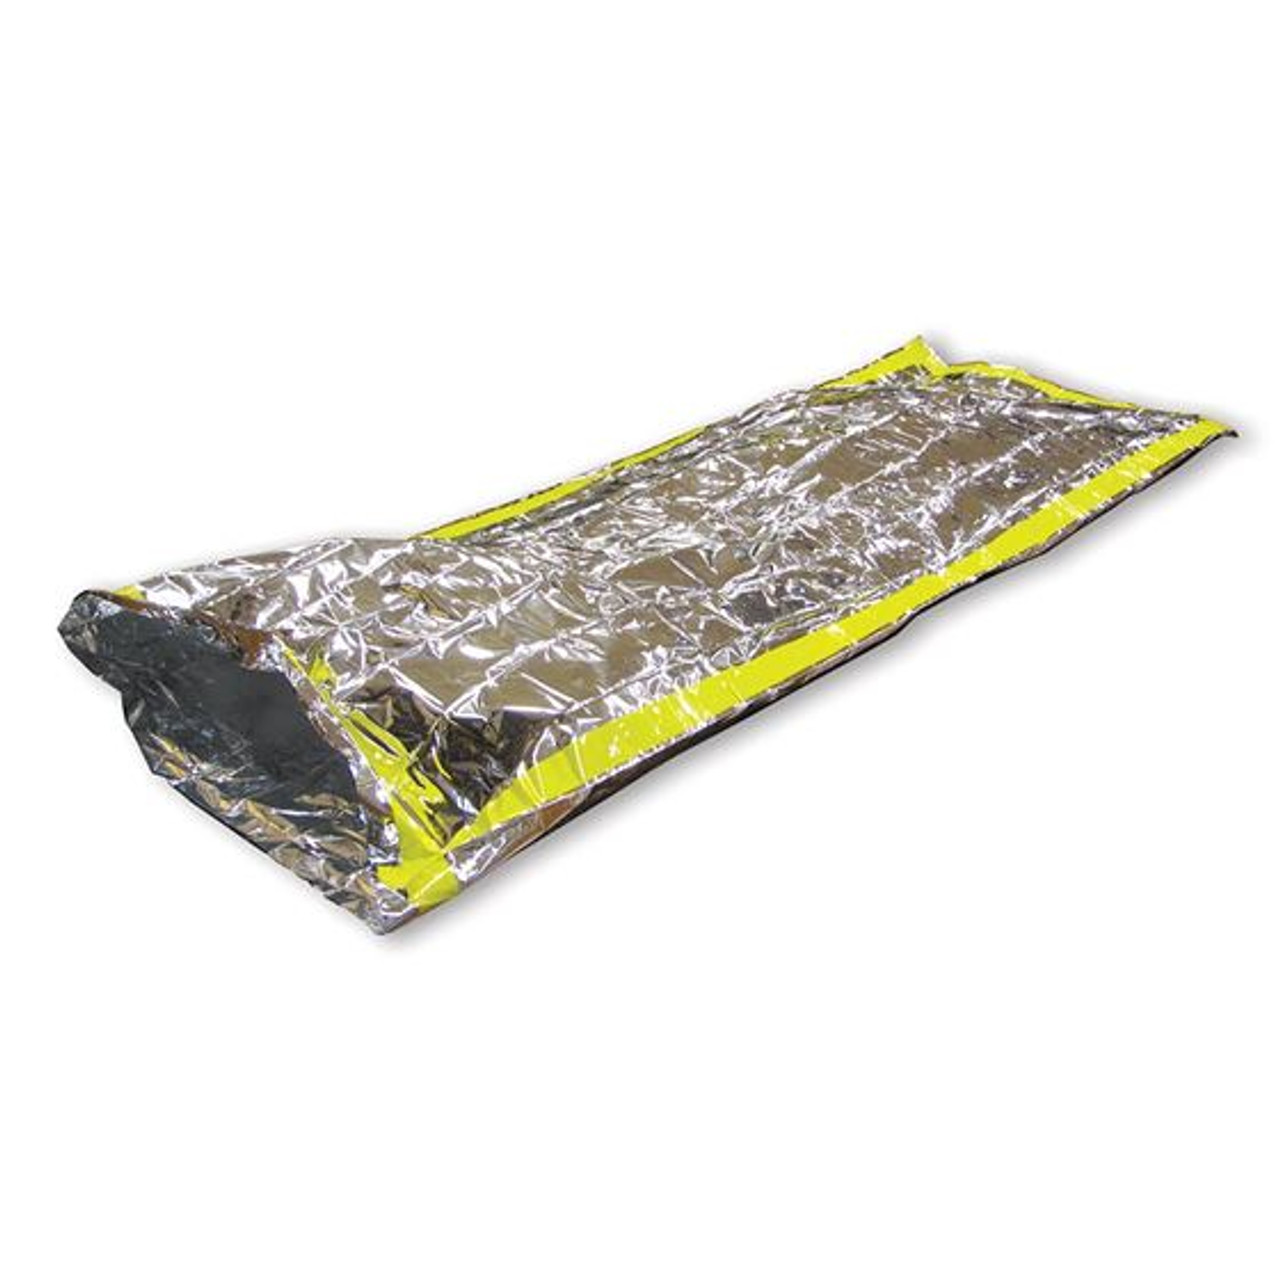 Stansport® Emergency Survival Sleeping Bag